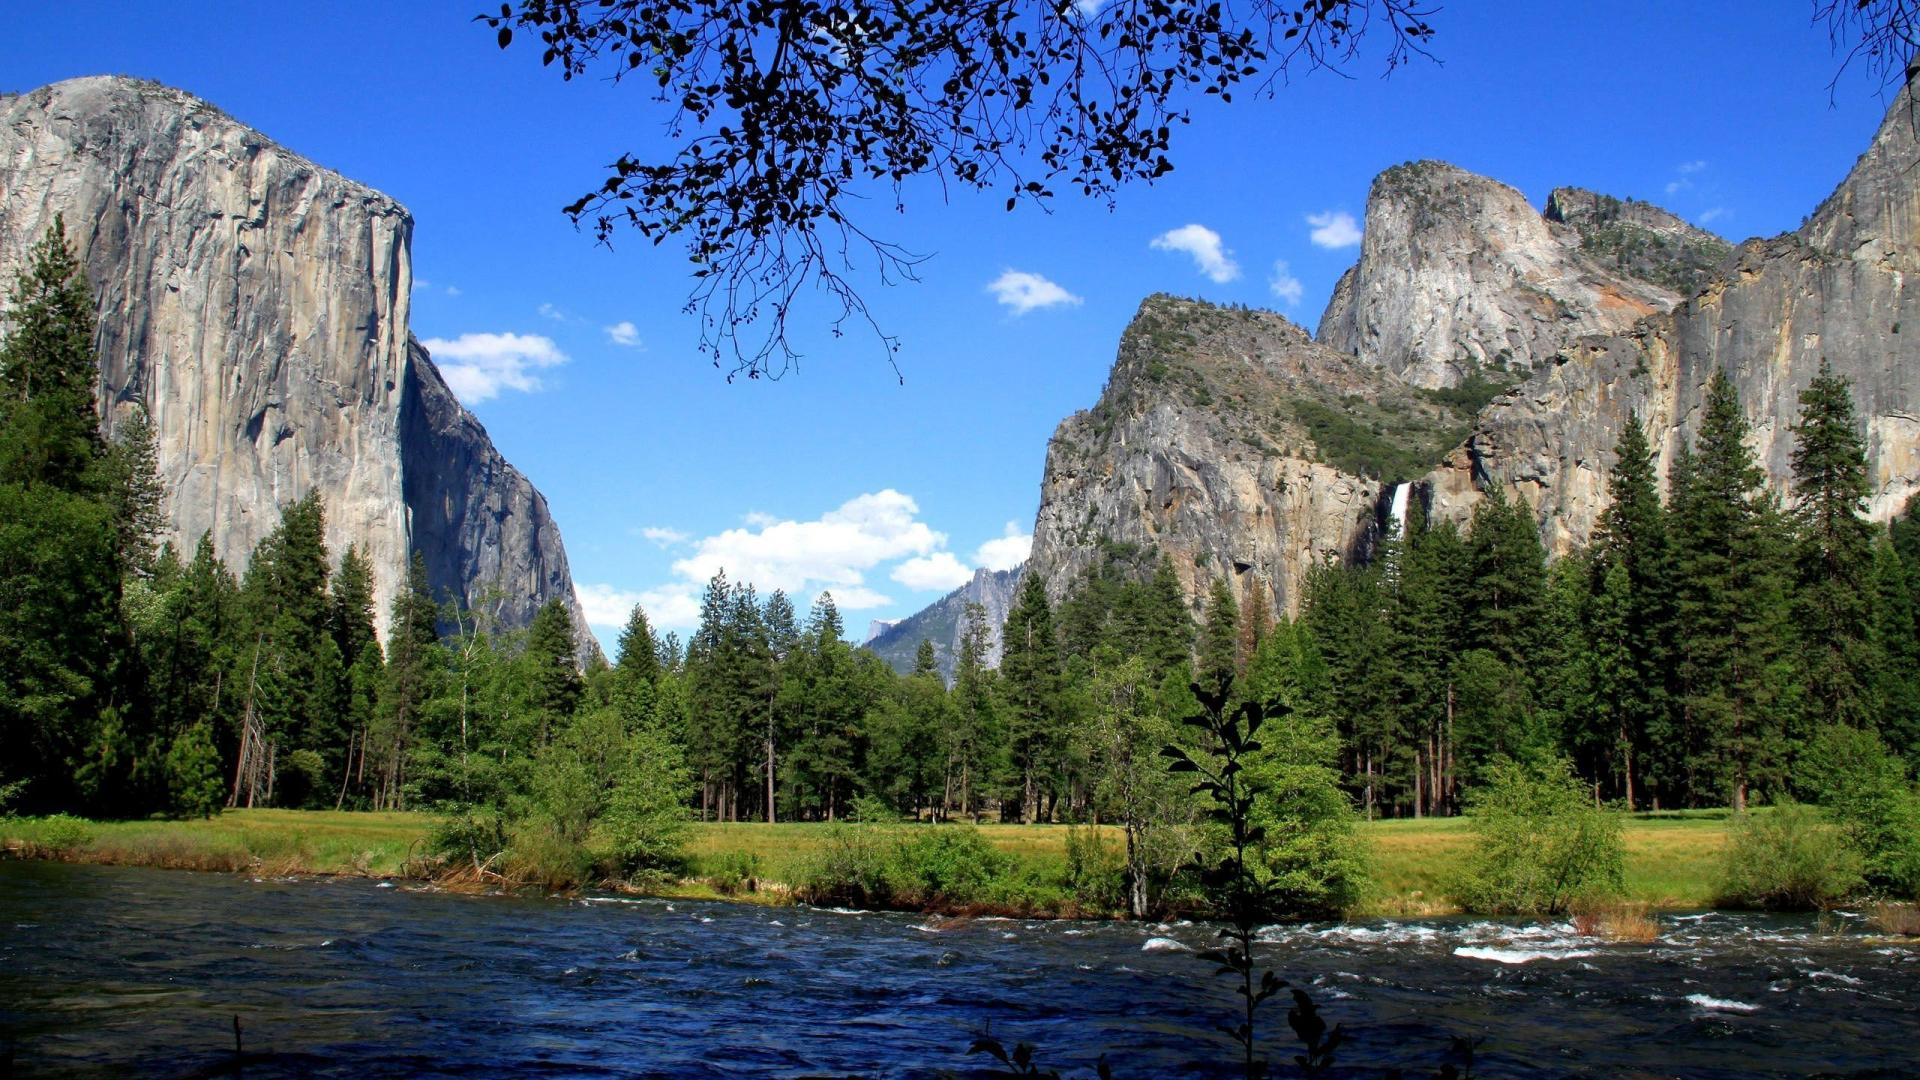 Hd wallpaper yosemite - El Capitan Wallpapers We Provide The Best Collection Of Hd Wallpapers